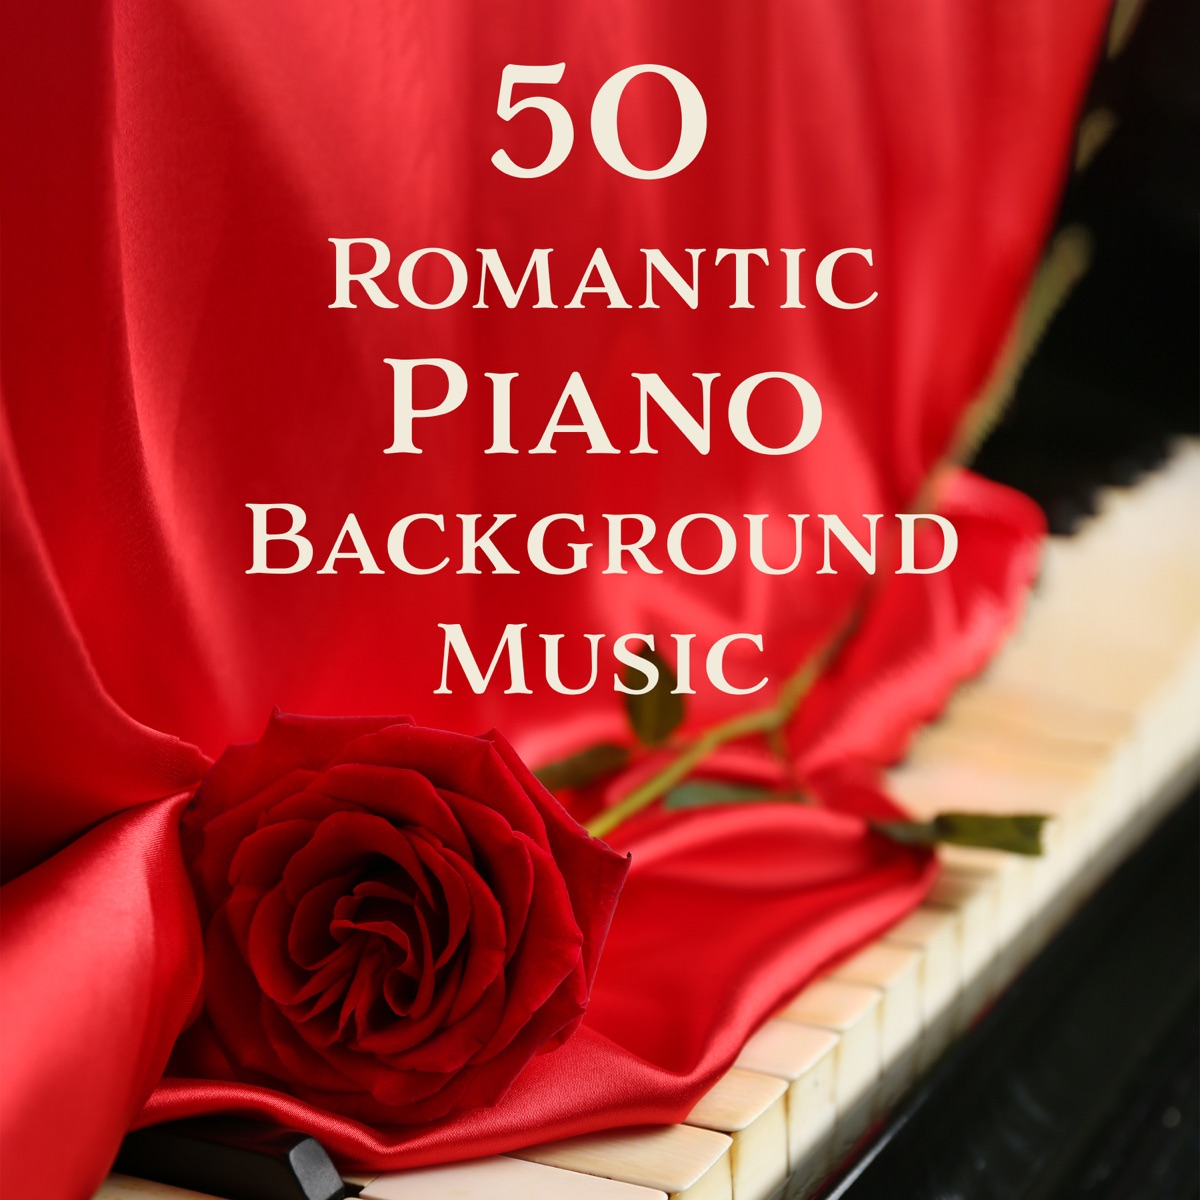 50 Romantic Piano Background Music: Moody Jazz for